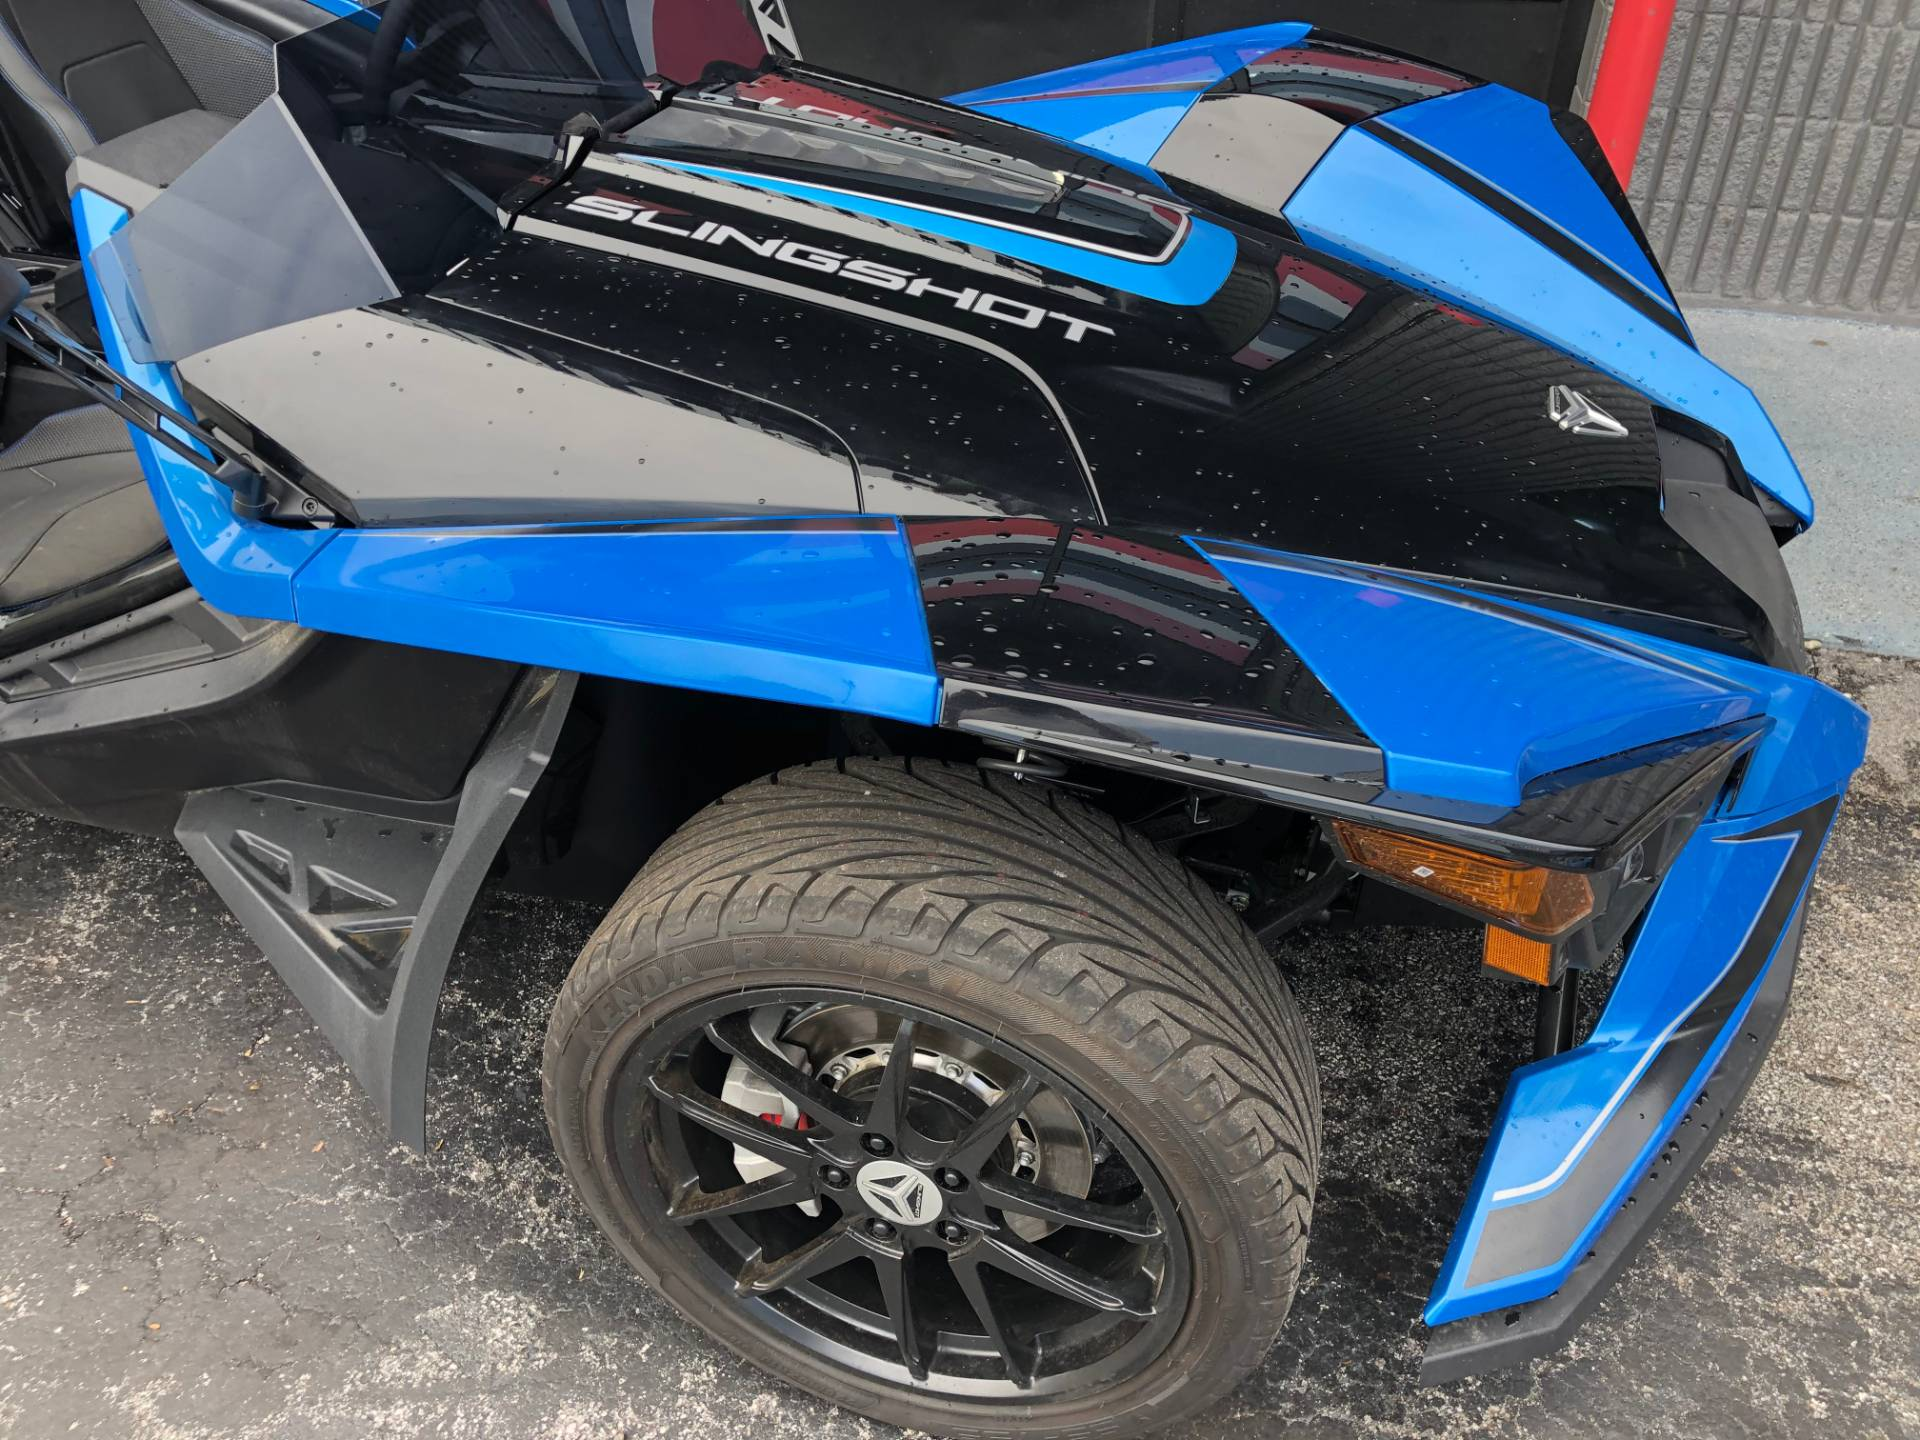 2018 Polaris Slingshot SLR in Pinellas Park, Florida - Photo 21